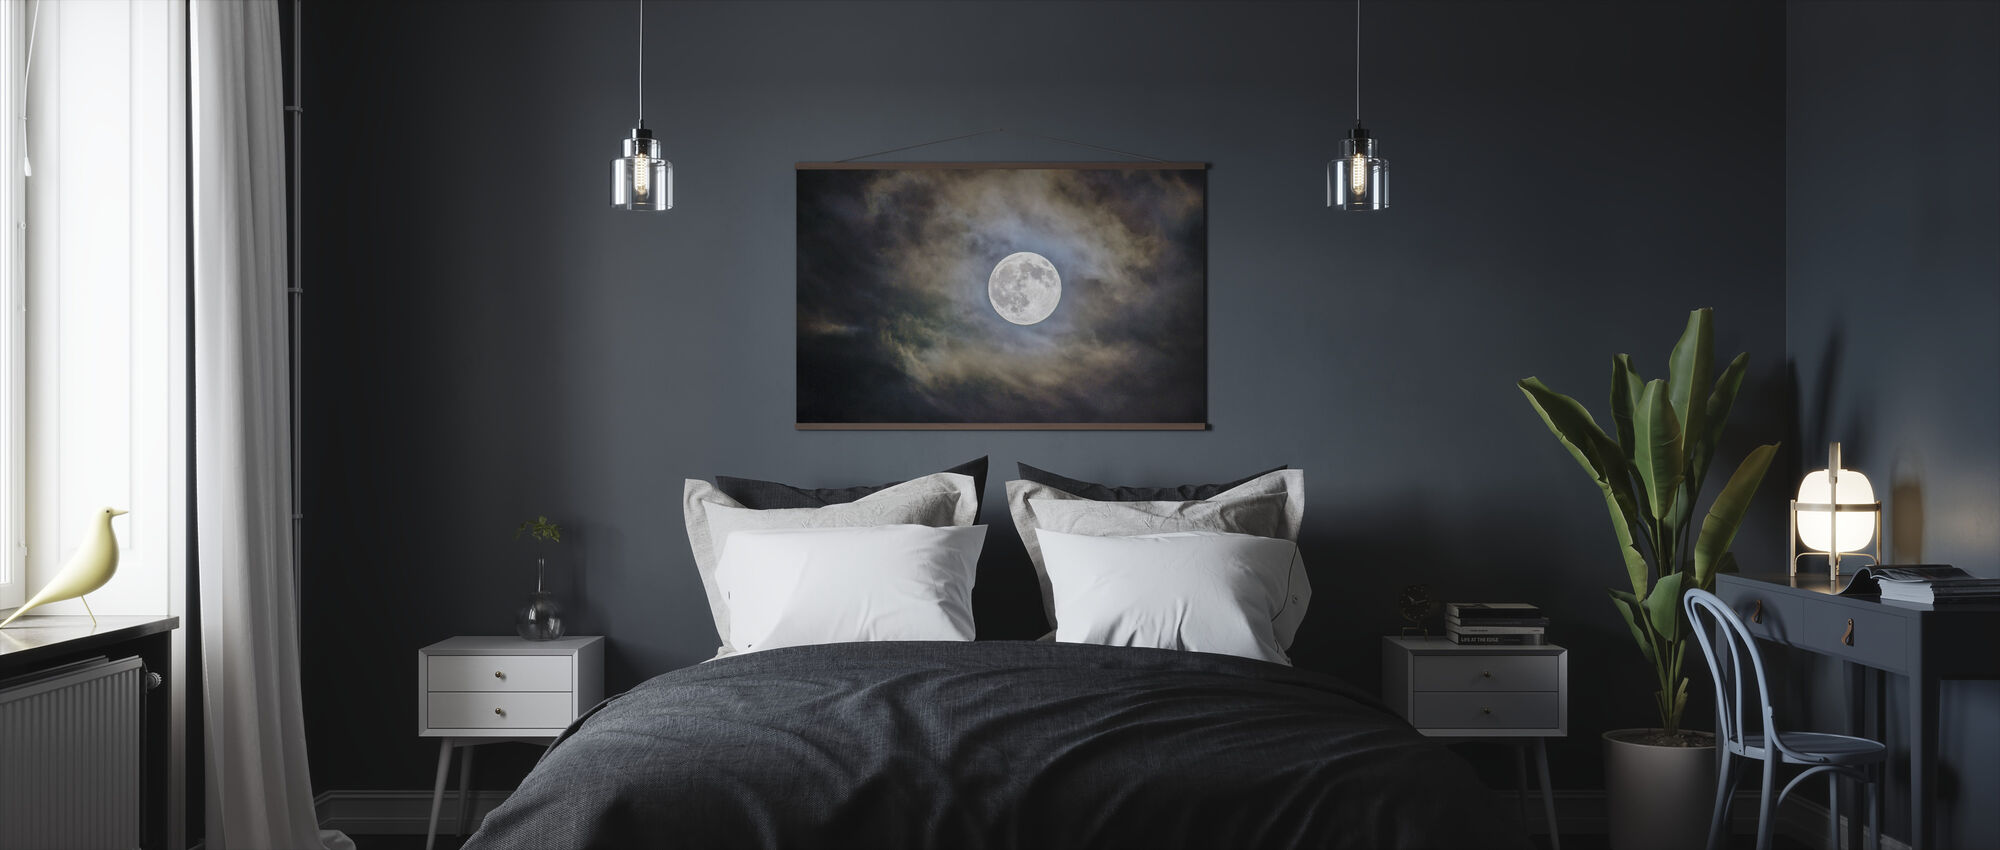 Cloudy Moon - Poster - Bedroom